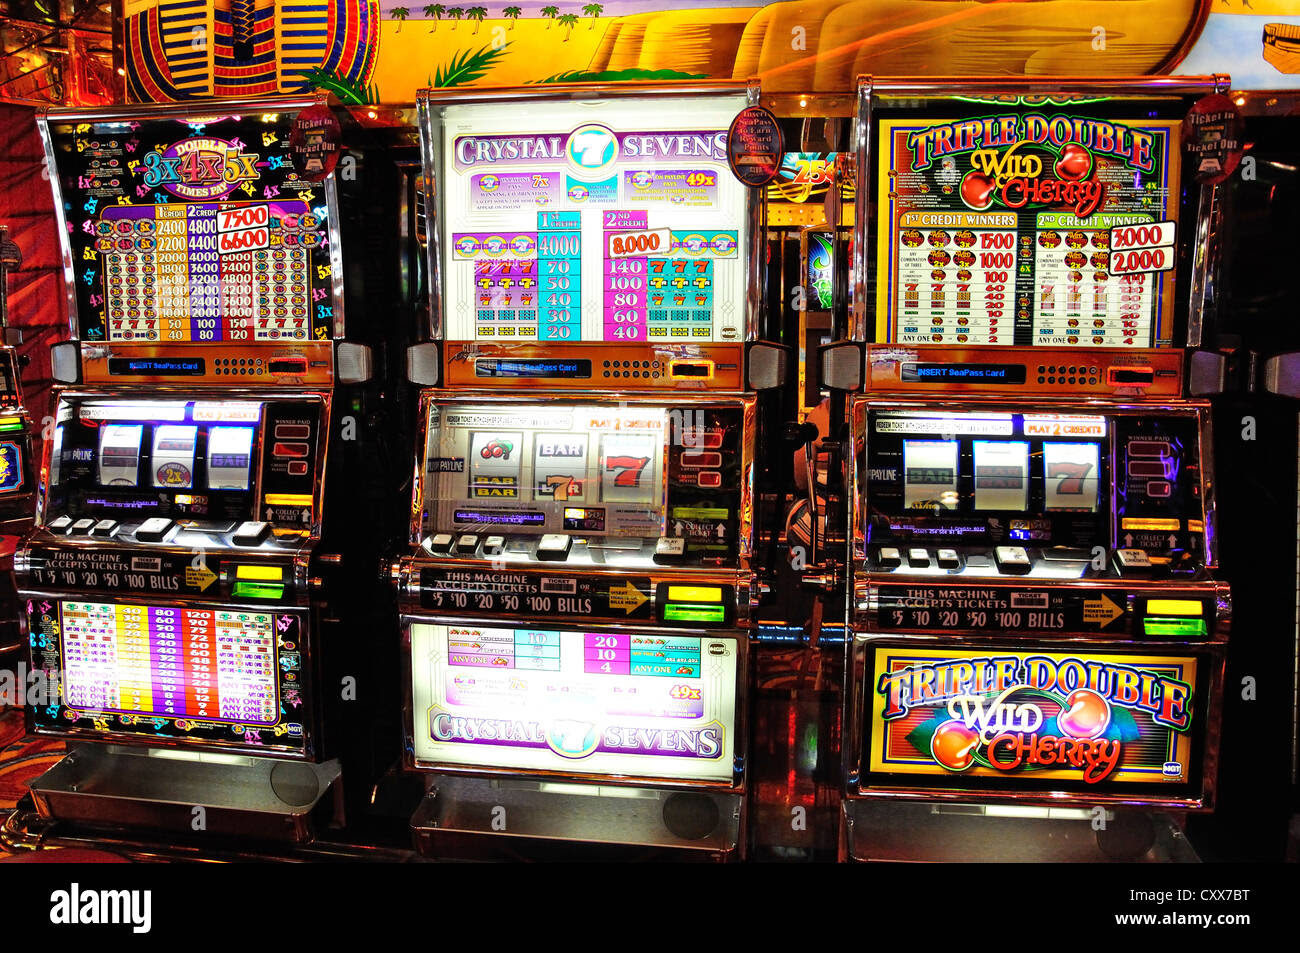 Best slot machines to play on a cruise ship